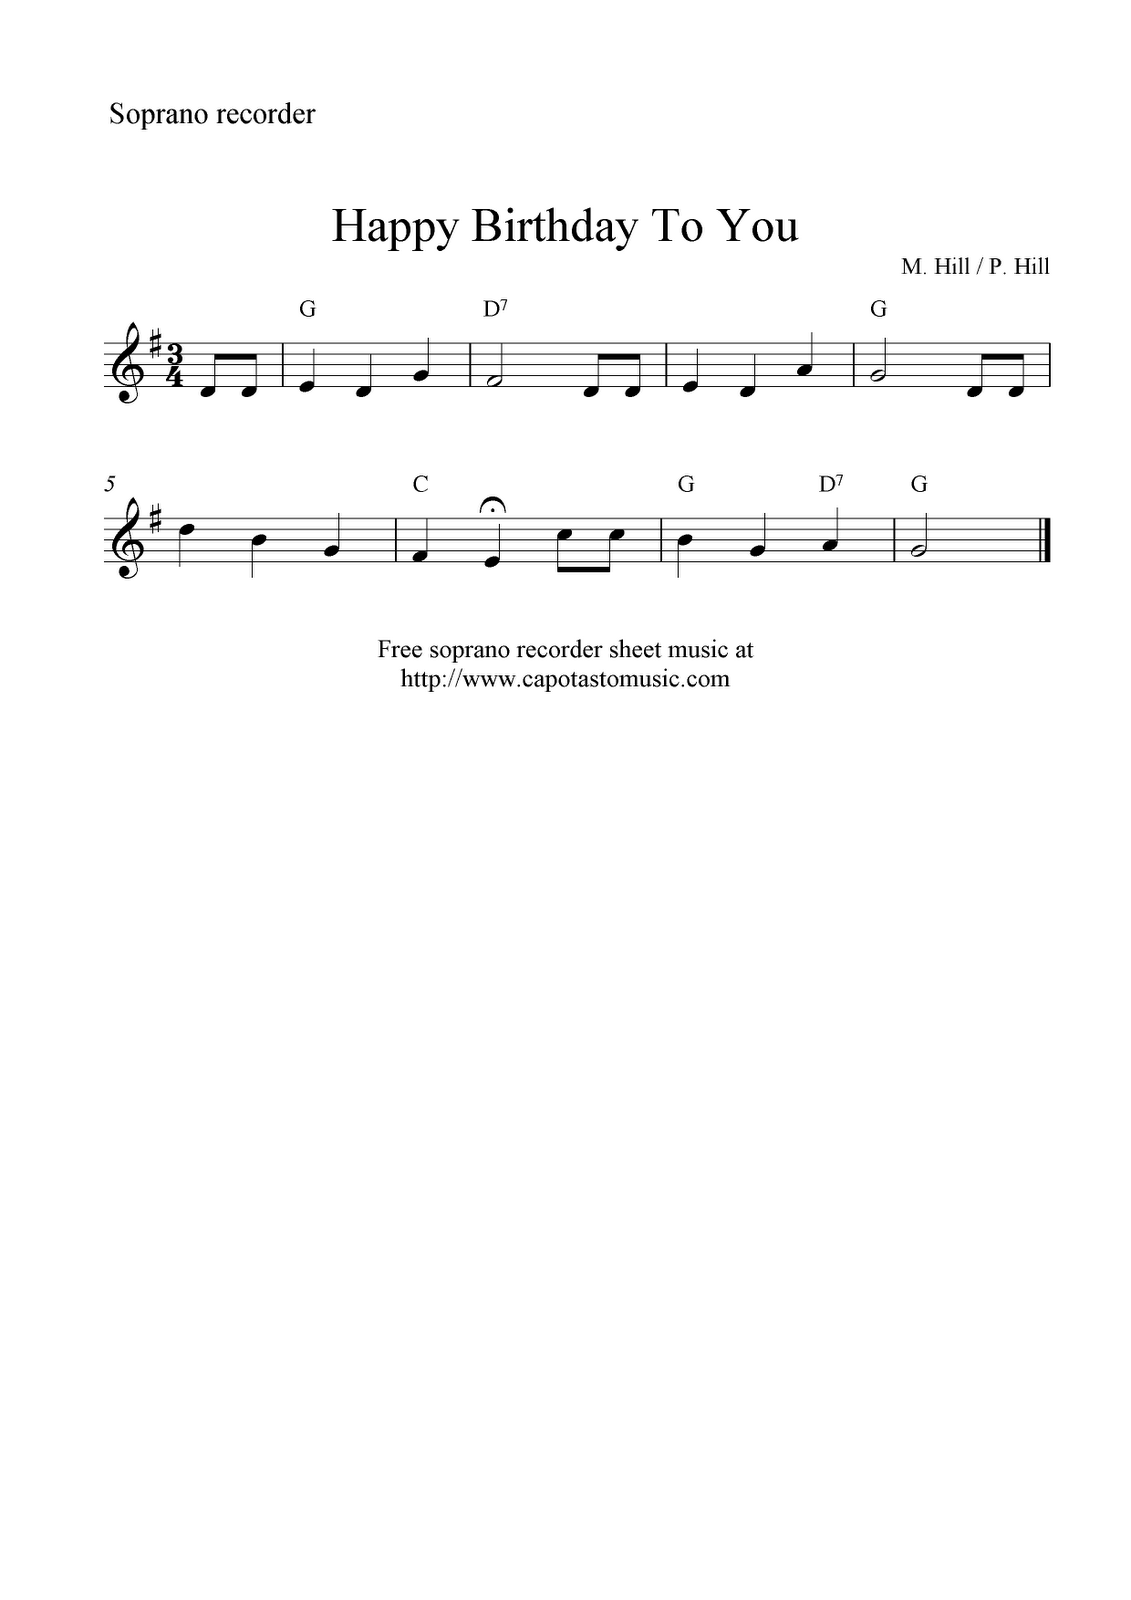 Happy Birthday Song Sheet Music With Letters